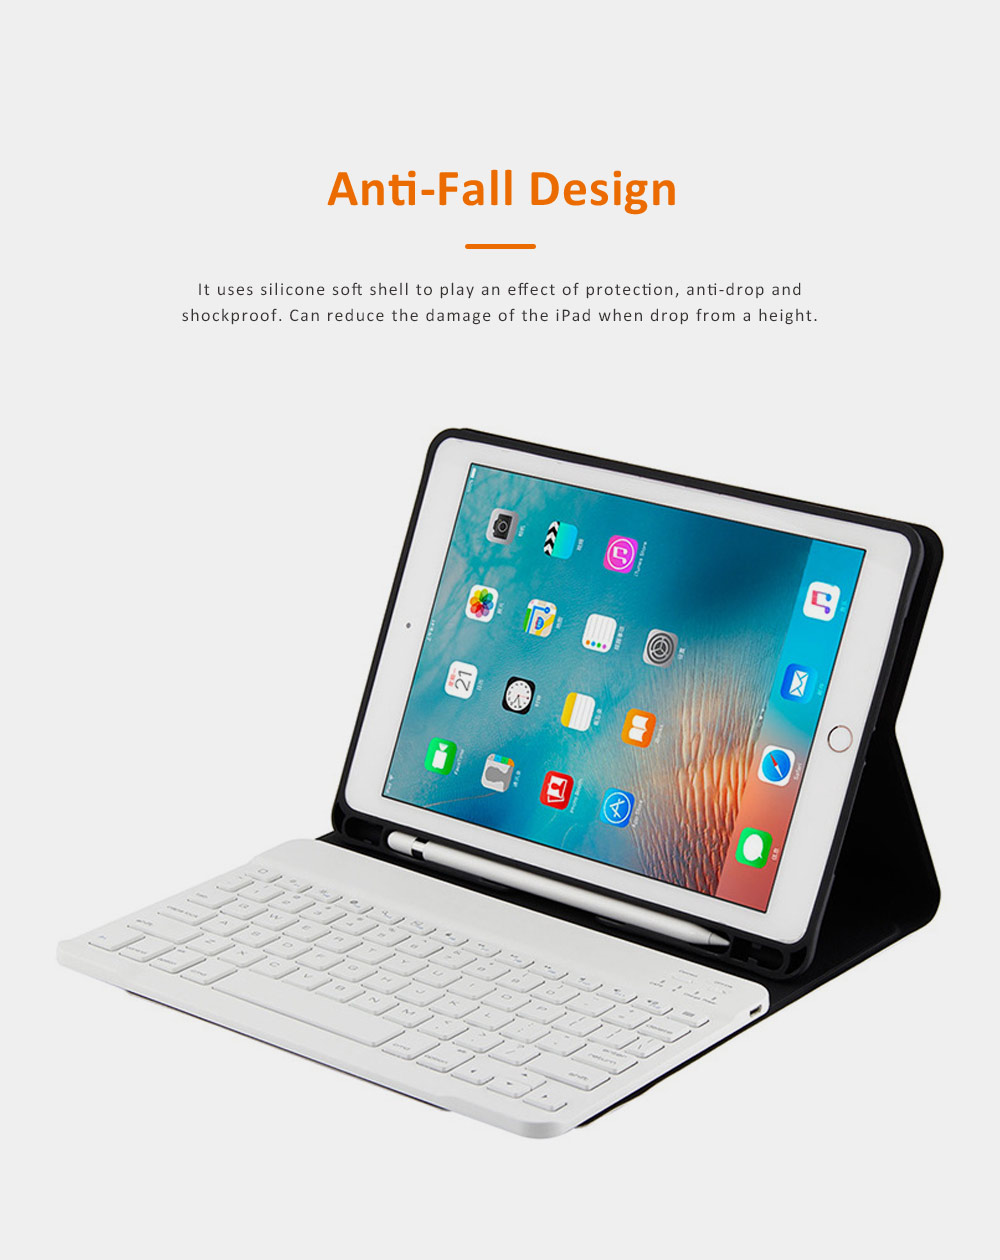 Smart Case with 3.0 Wireless Bluetooth Keyboard for iPad 9.7, Magnetic Leather Auto Sleep Awake Smart Case with Pencil Holder, Intelligent Sleep Protection Cover for Air 2 1, iPad Pro 9.7, ipad 9.7 2017 4